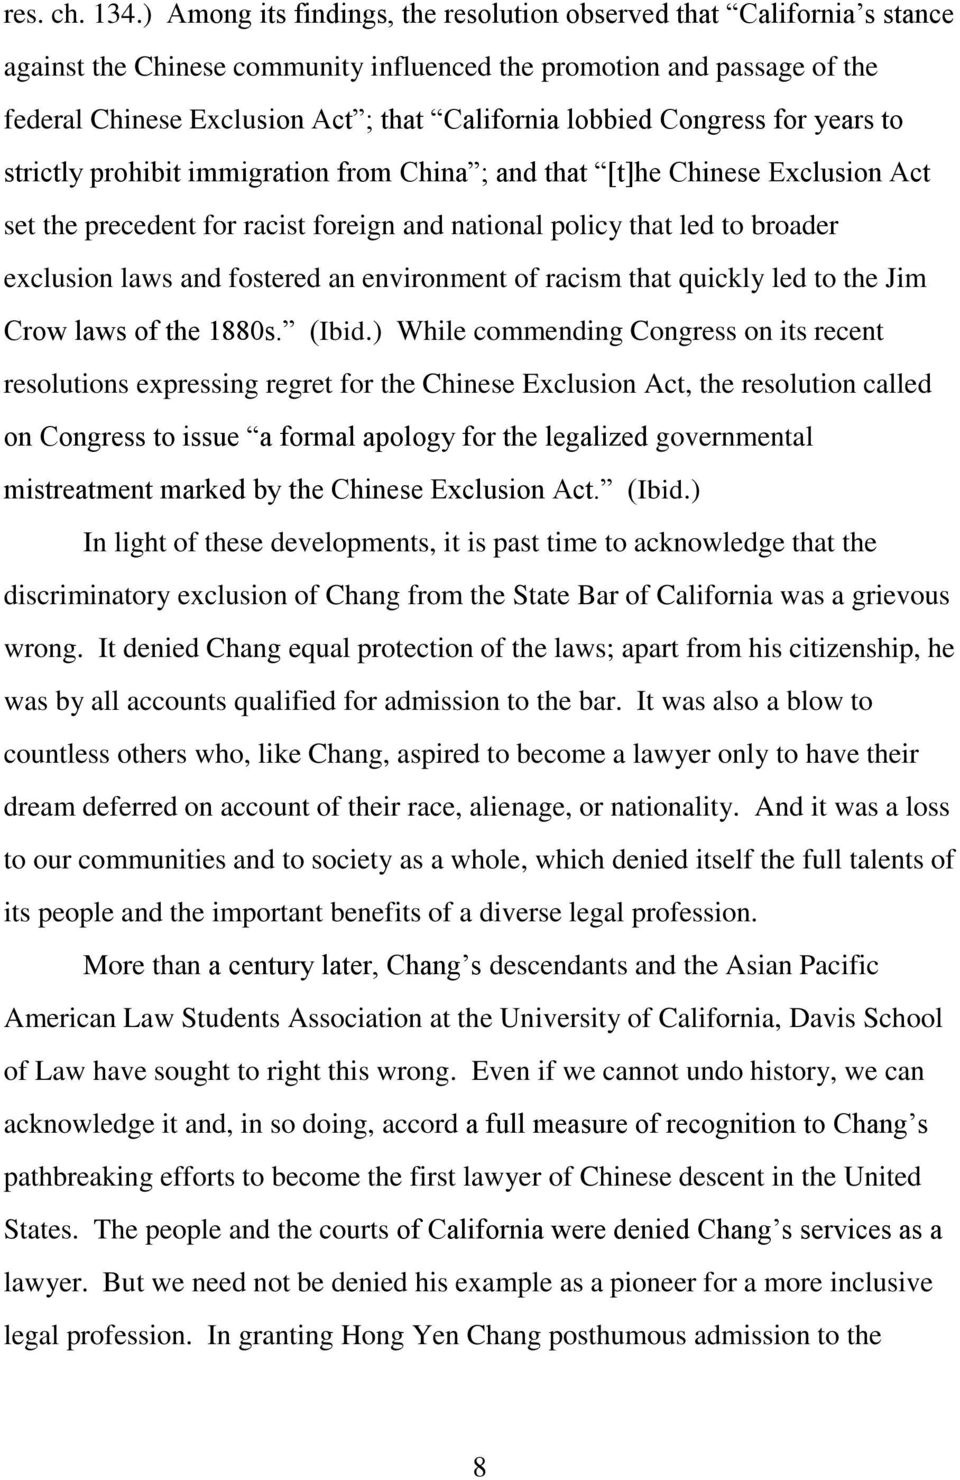 lobbied Congress for years to strictly prohibit immigration from China ; and that [t]he Chinese Exclusion Act set the precedent for racist foreign and national policy that led to broader exclusion